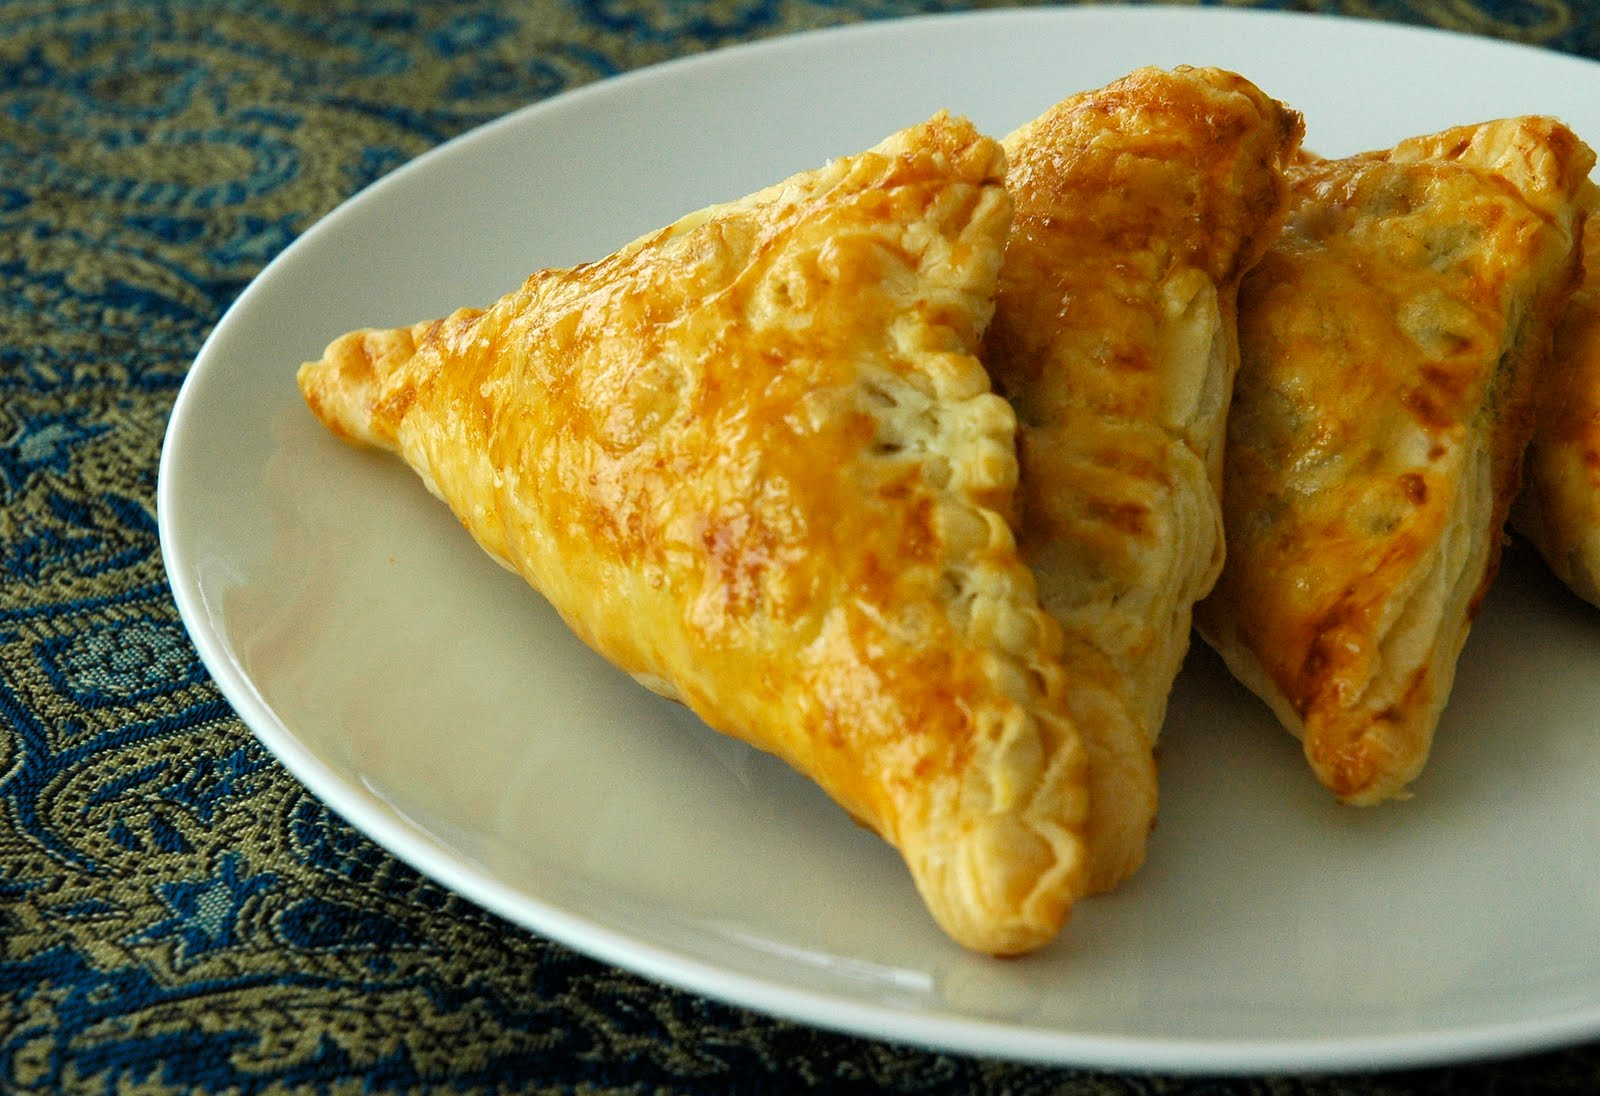 Olives & Bread: Vegetable Samosa with Puff Pastry